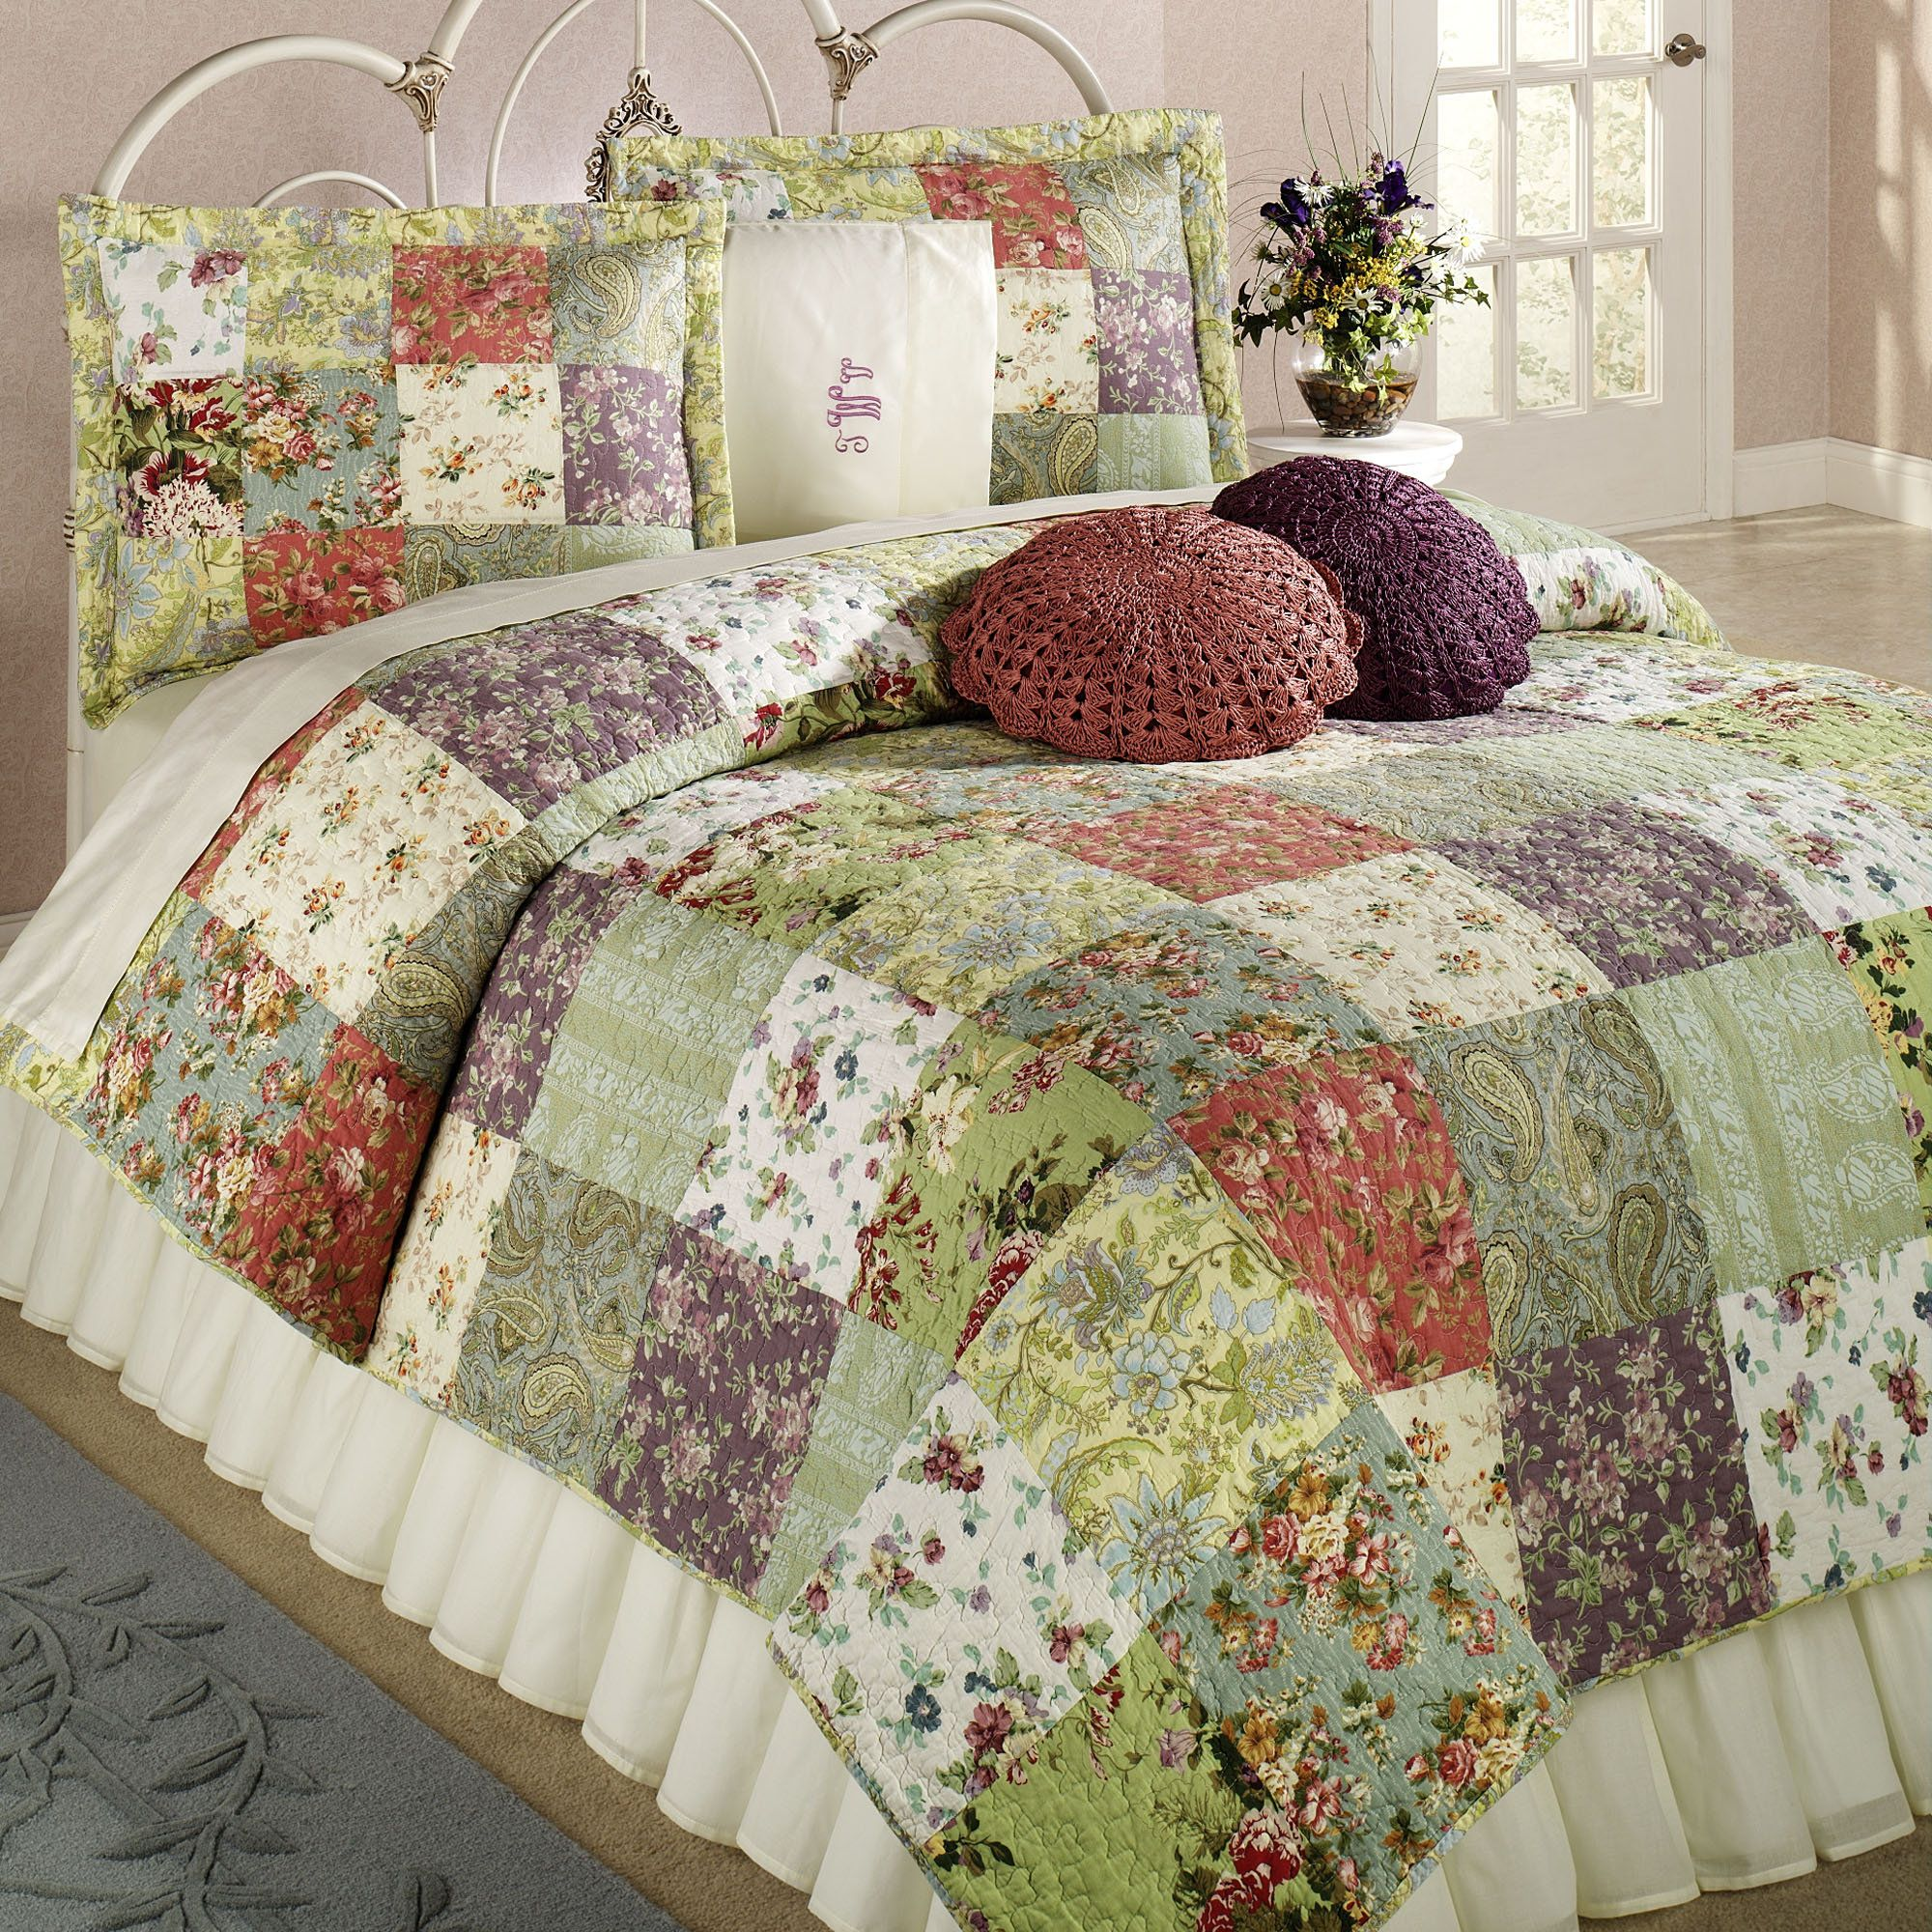 Bed sheet design patchwork - Patchwork